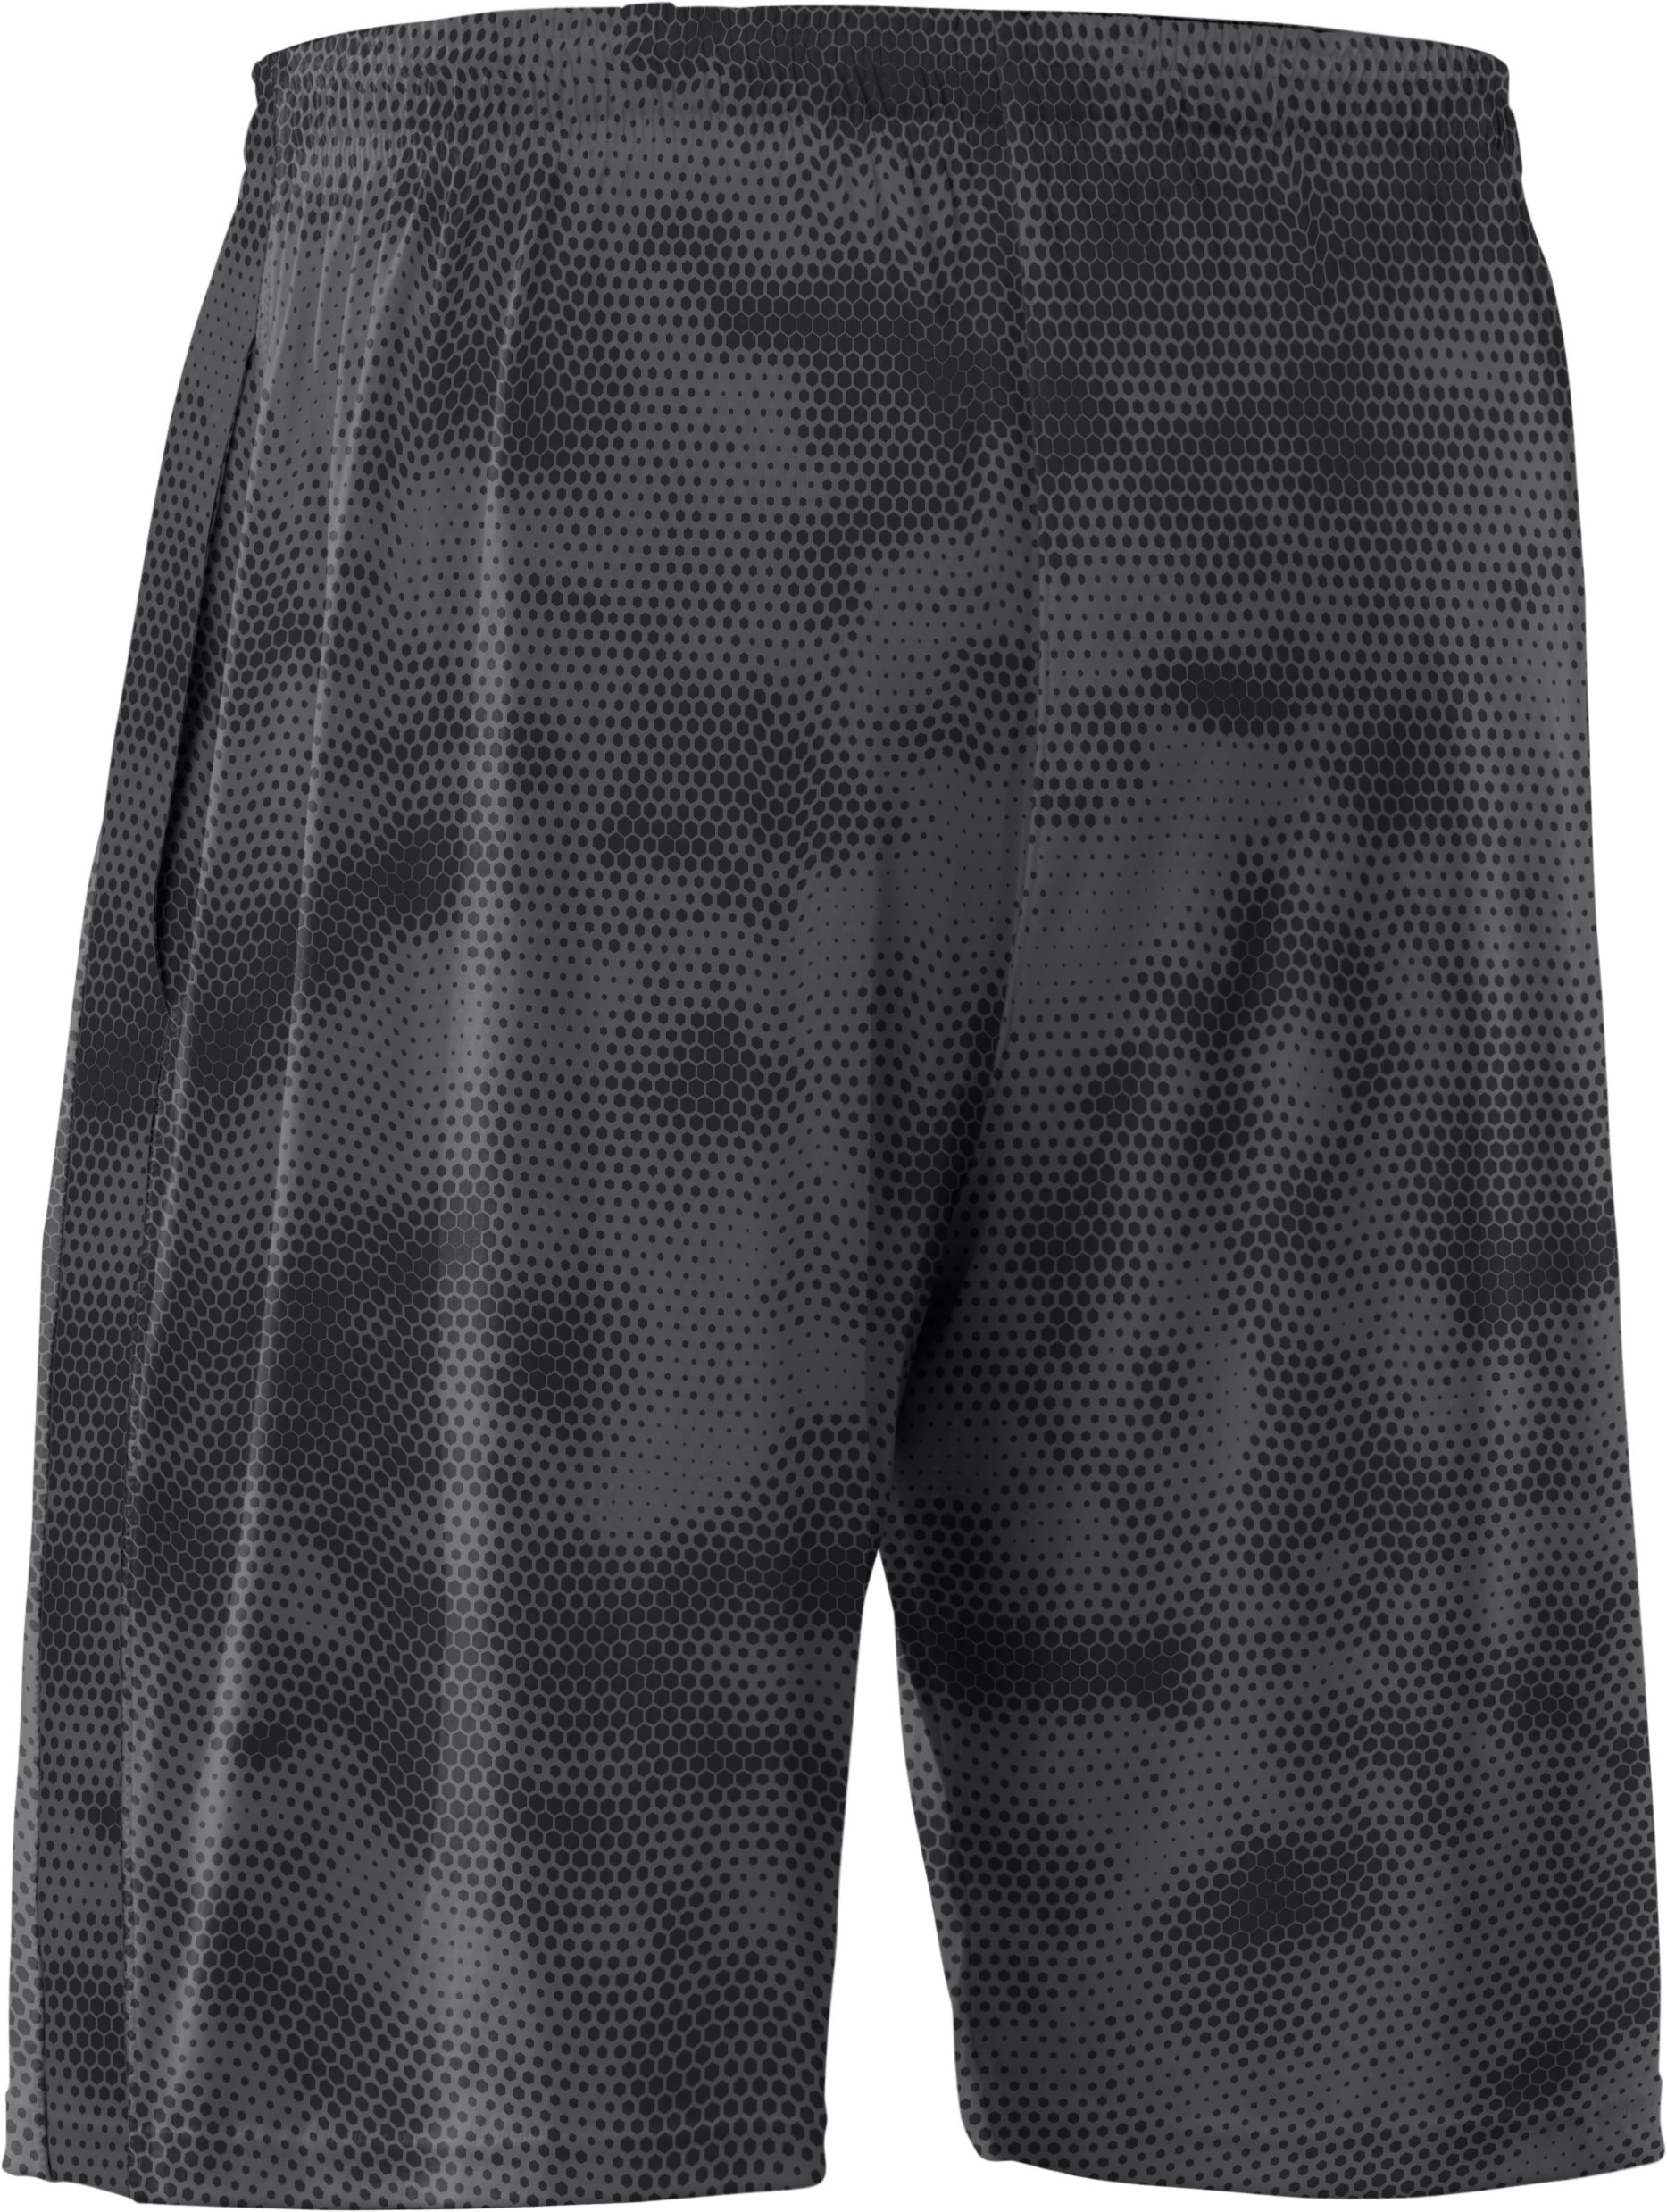 Men's UA Micro Printed Shorts, Graphite